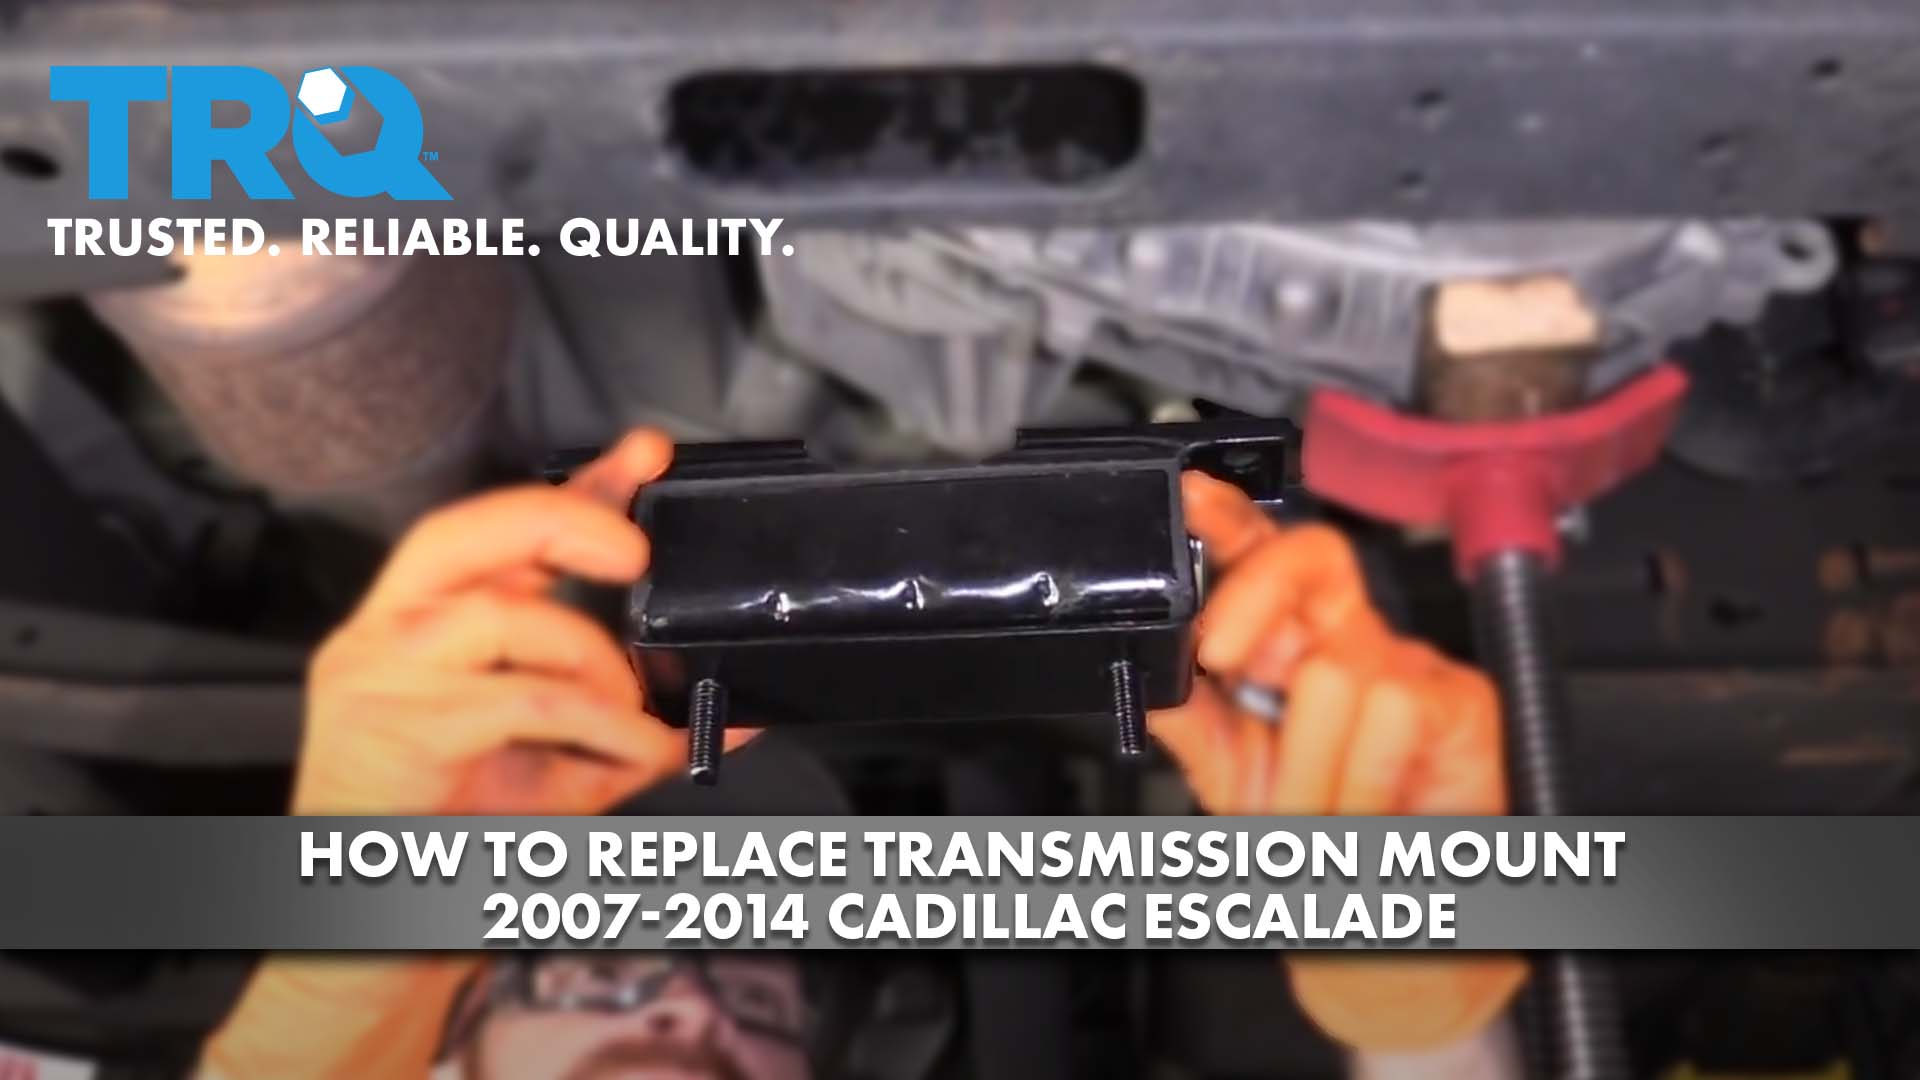 How To Replace Transmission Mount 2007-14 Cadillac Escalade